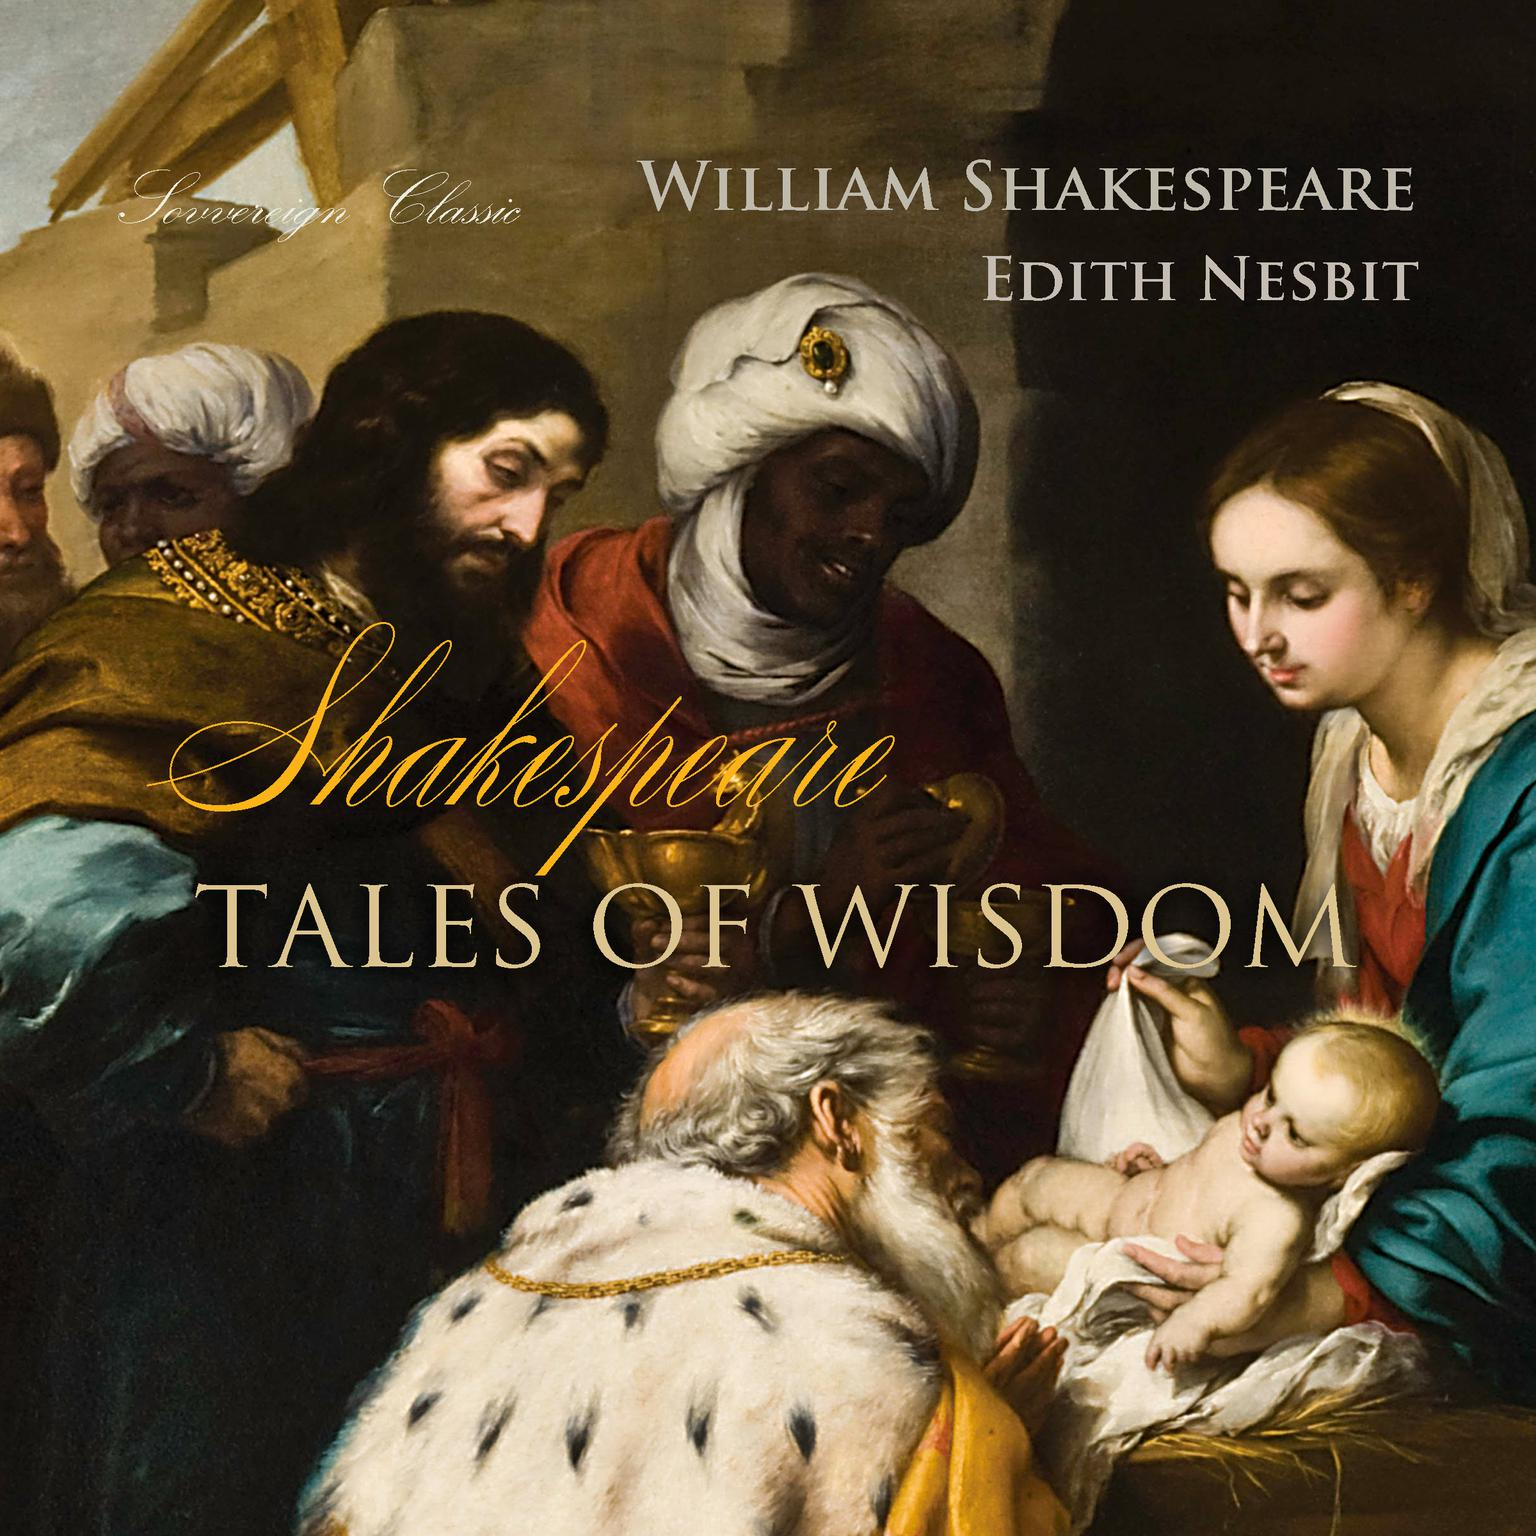 Shakespeare Tales of Wisdom Audiobook, by William Shakespeare